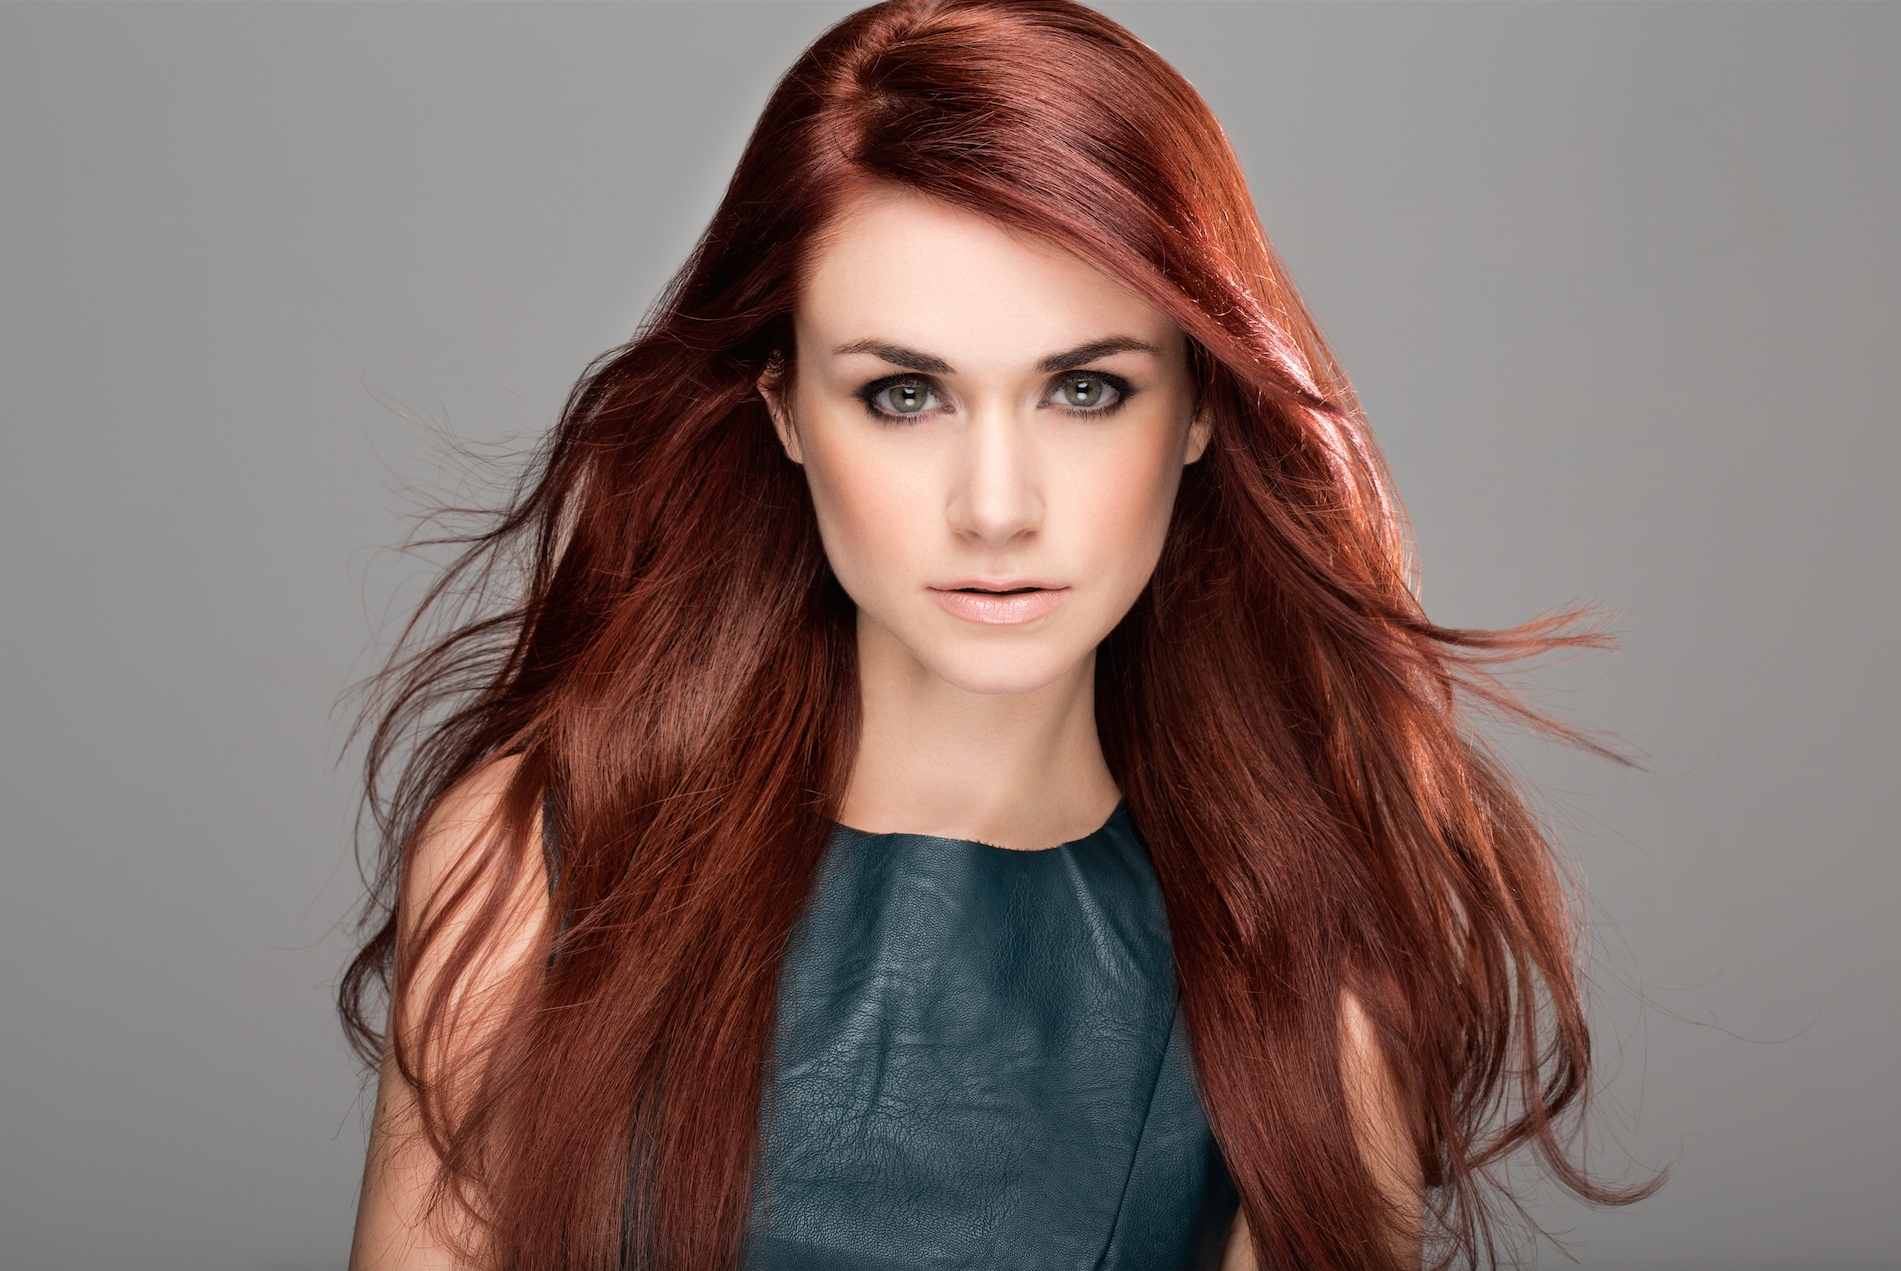 10 Cute Hair Color Ideas For 2014 how to pick the right hair color salon price lady 2021